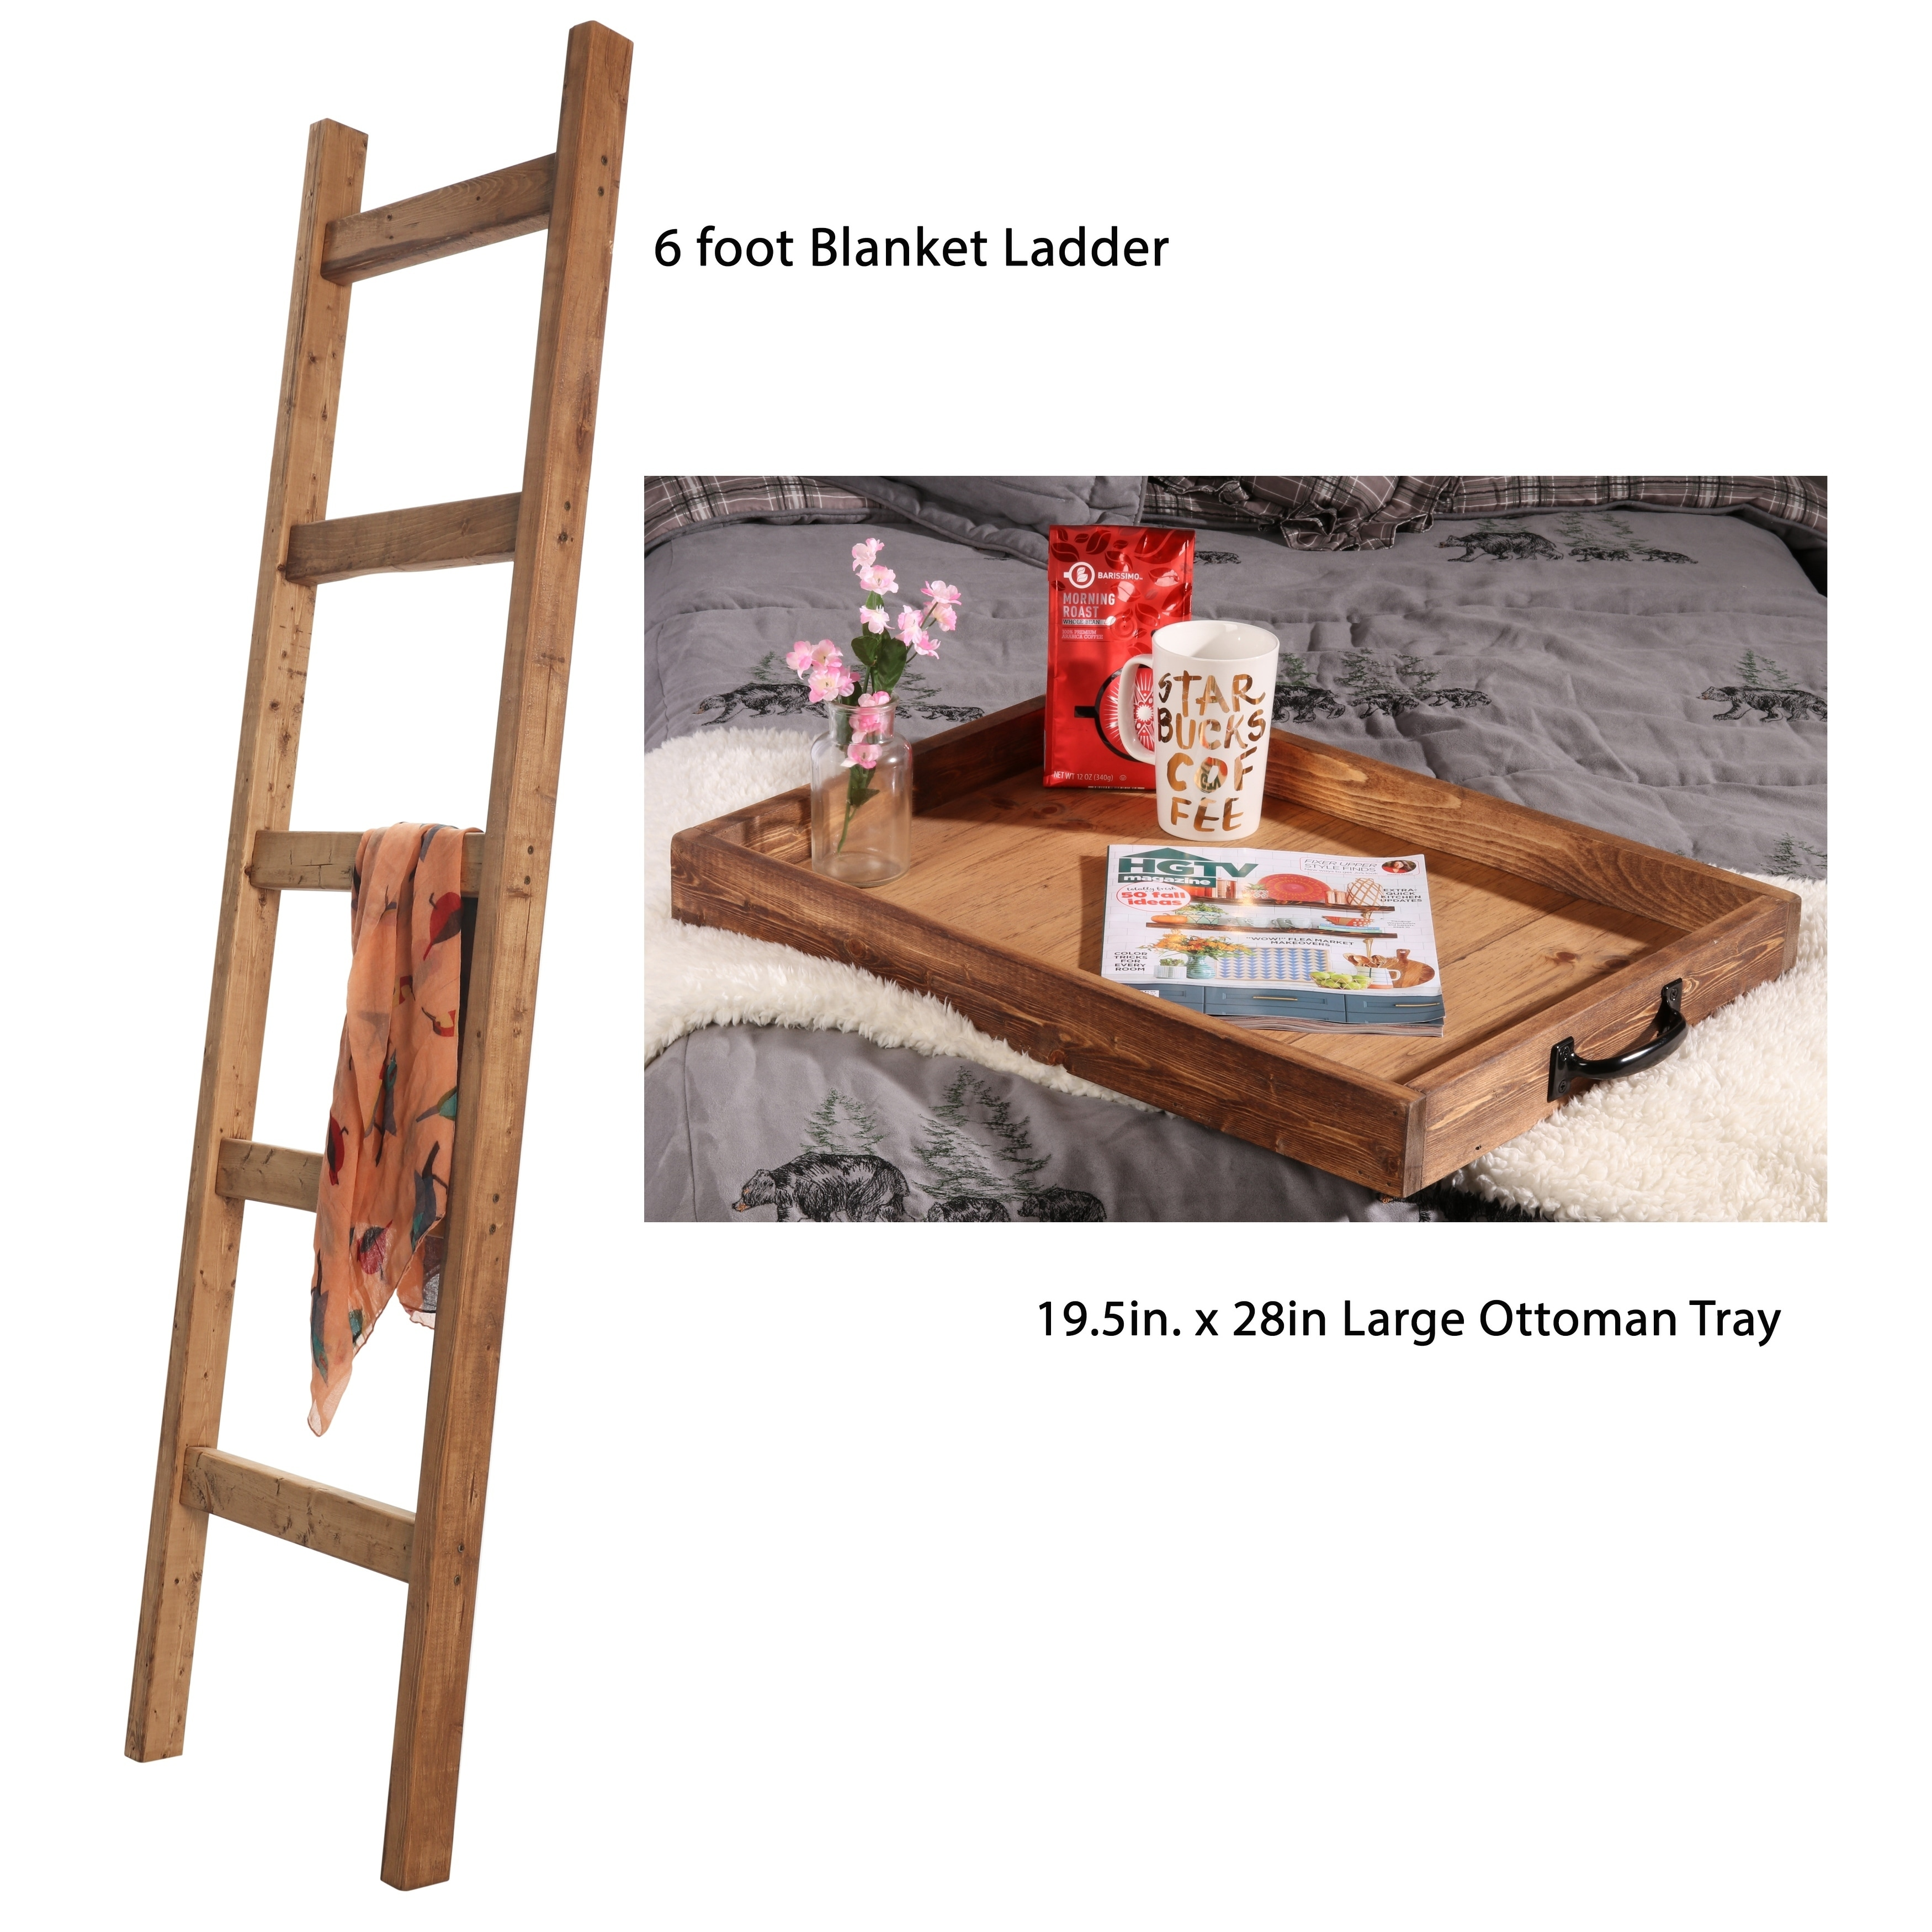 Early American Farmhouse Set - 6ft Blanket Ladder Serving Tray on farmhouse interior design, farmhouse exterior design, farm style kitchen design,